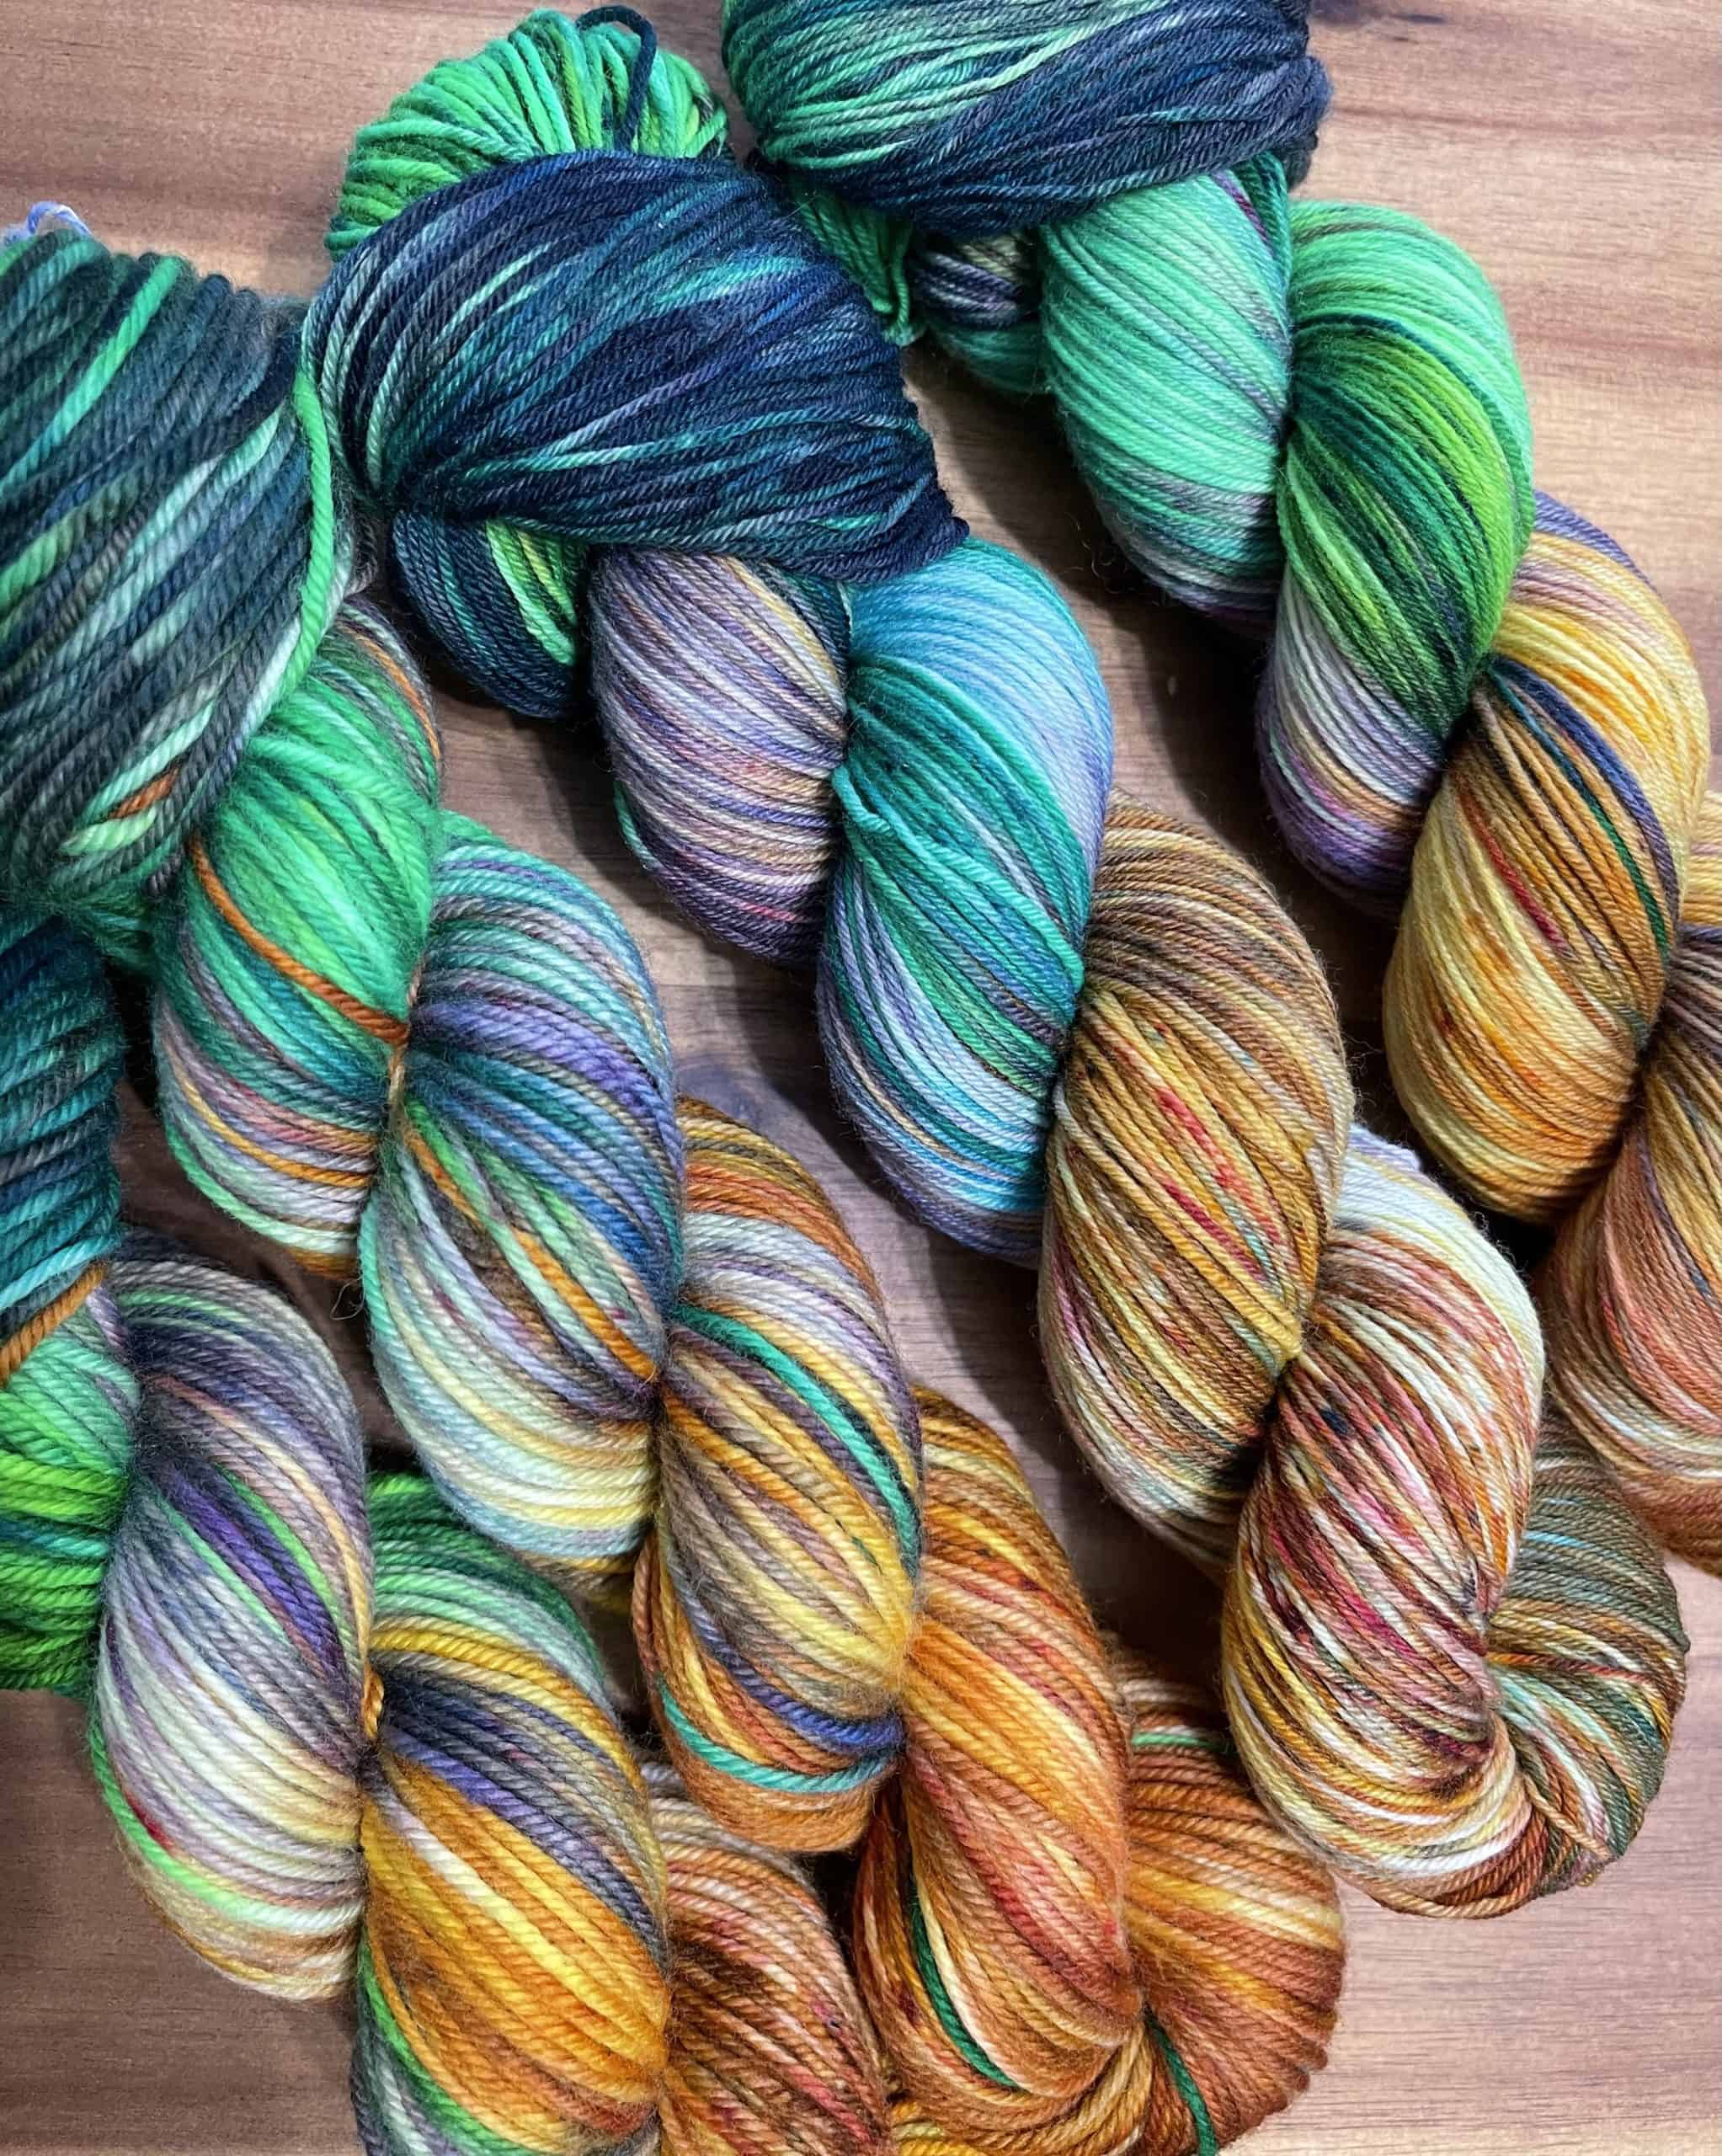 Green, gold, red and blue yarn.